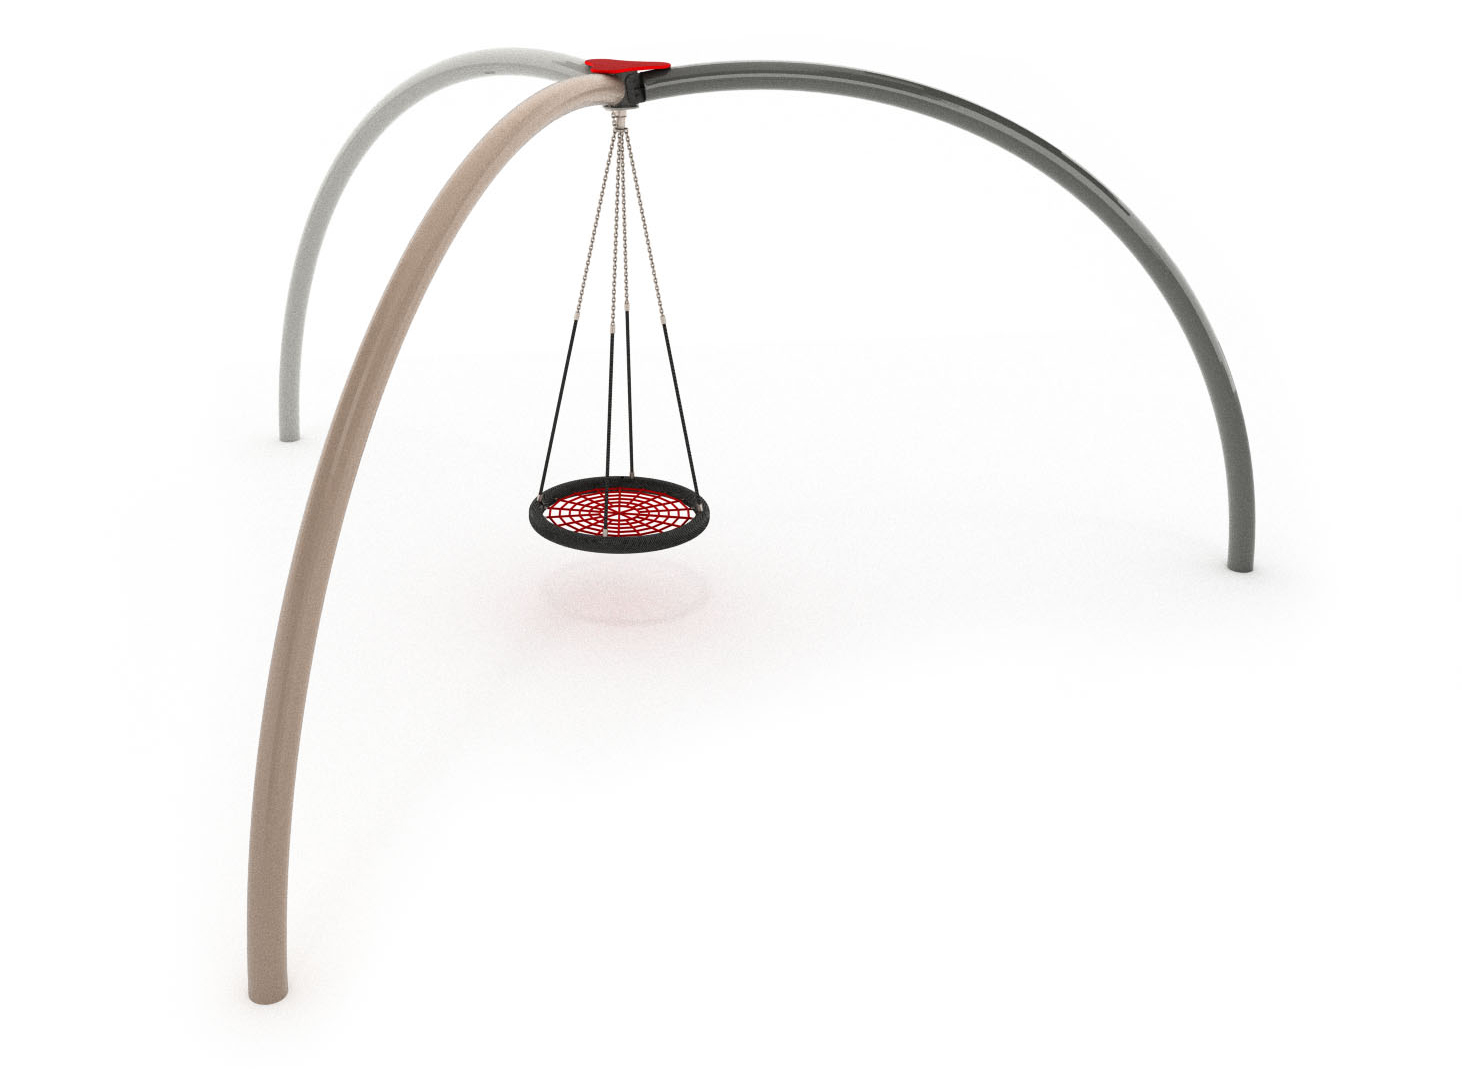 A basket swing set detween three tripod legs fully inclusive